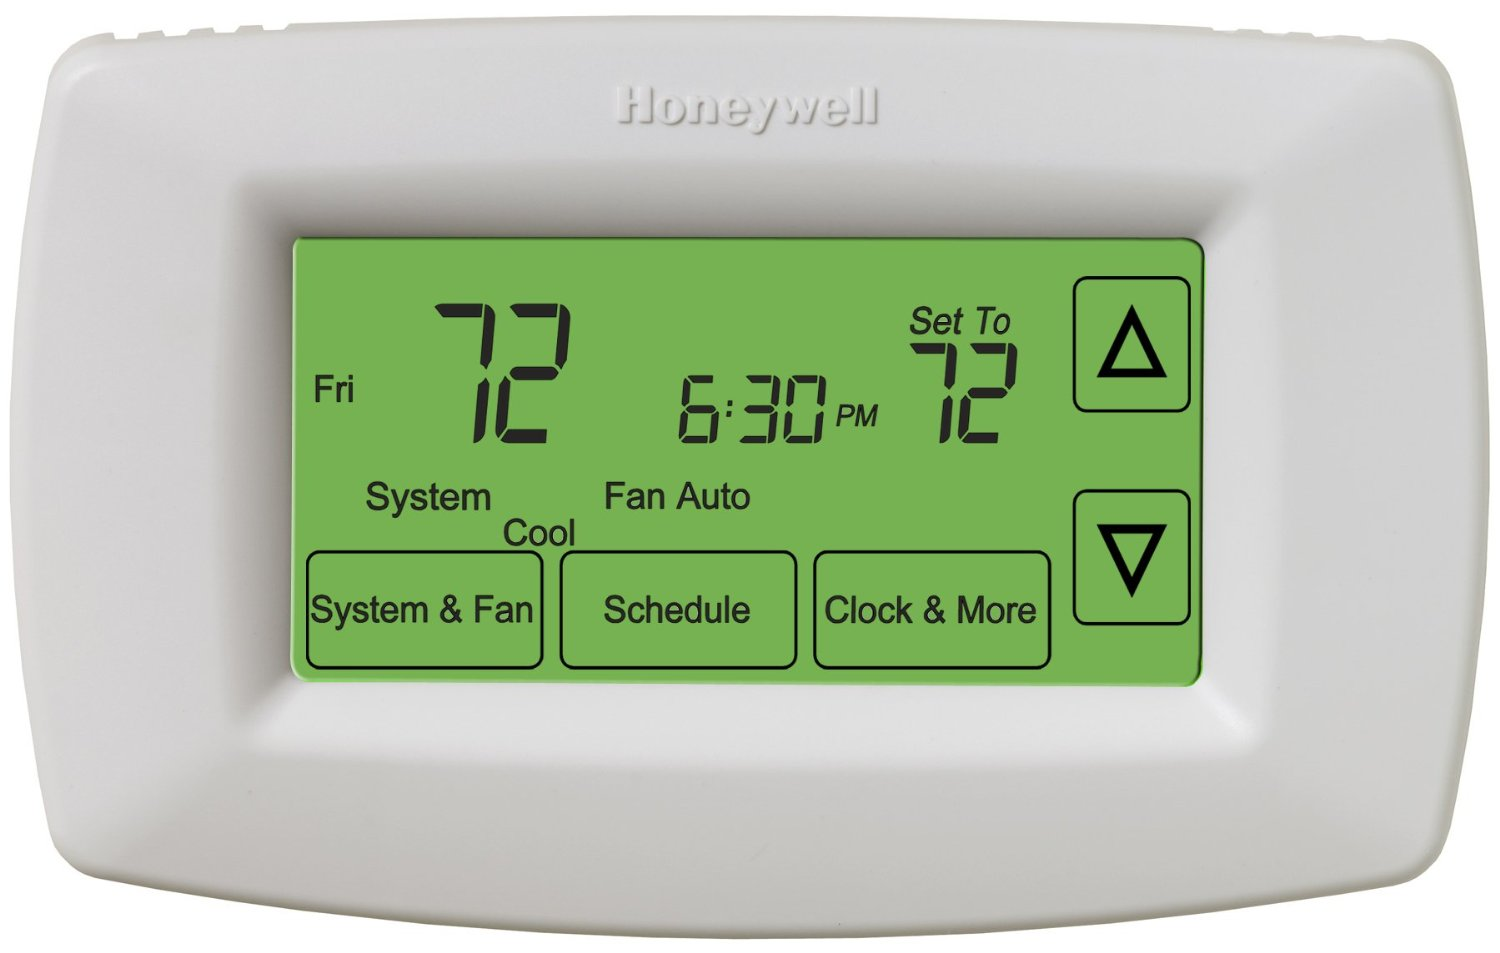 Honeywell RTH7600D Touchscreen 7 Day Programmable Thermostat mathew kevin, author at best digital thermostat reviews and buying honeywell tl7235a1003 wiring diagram at crackthecode.co